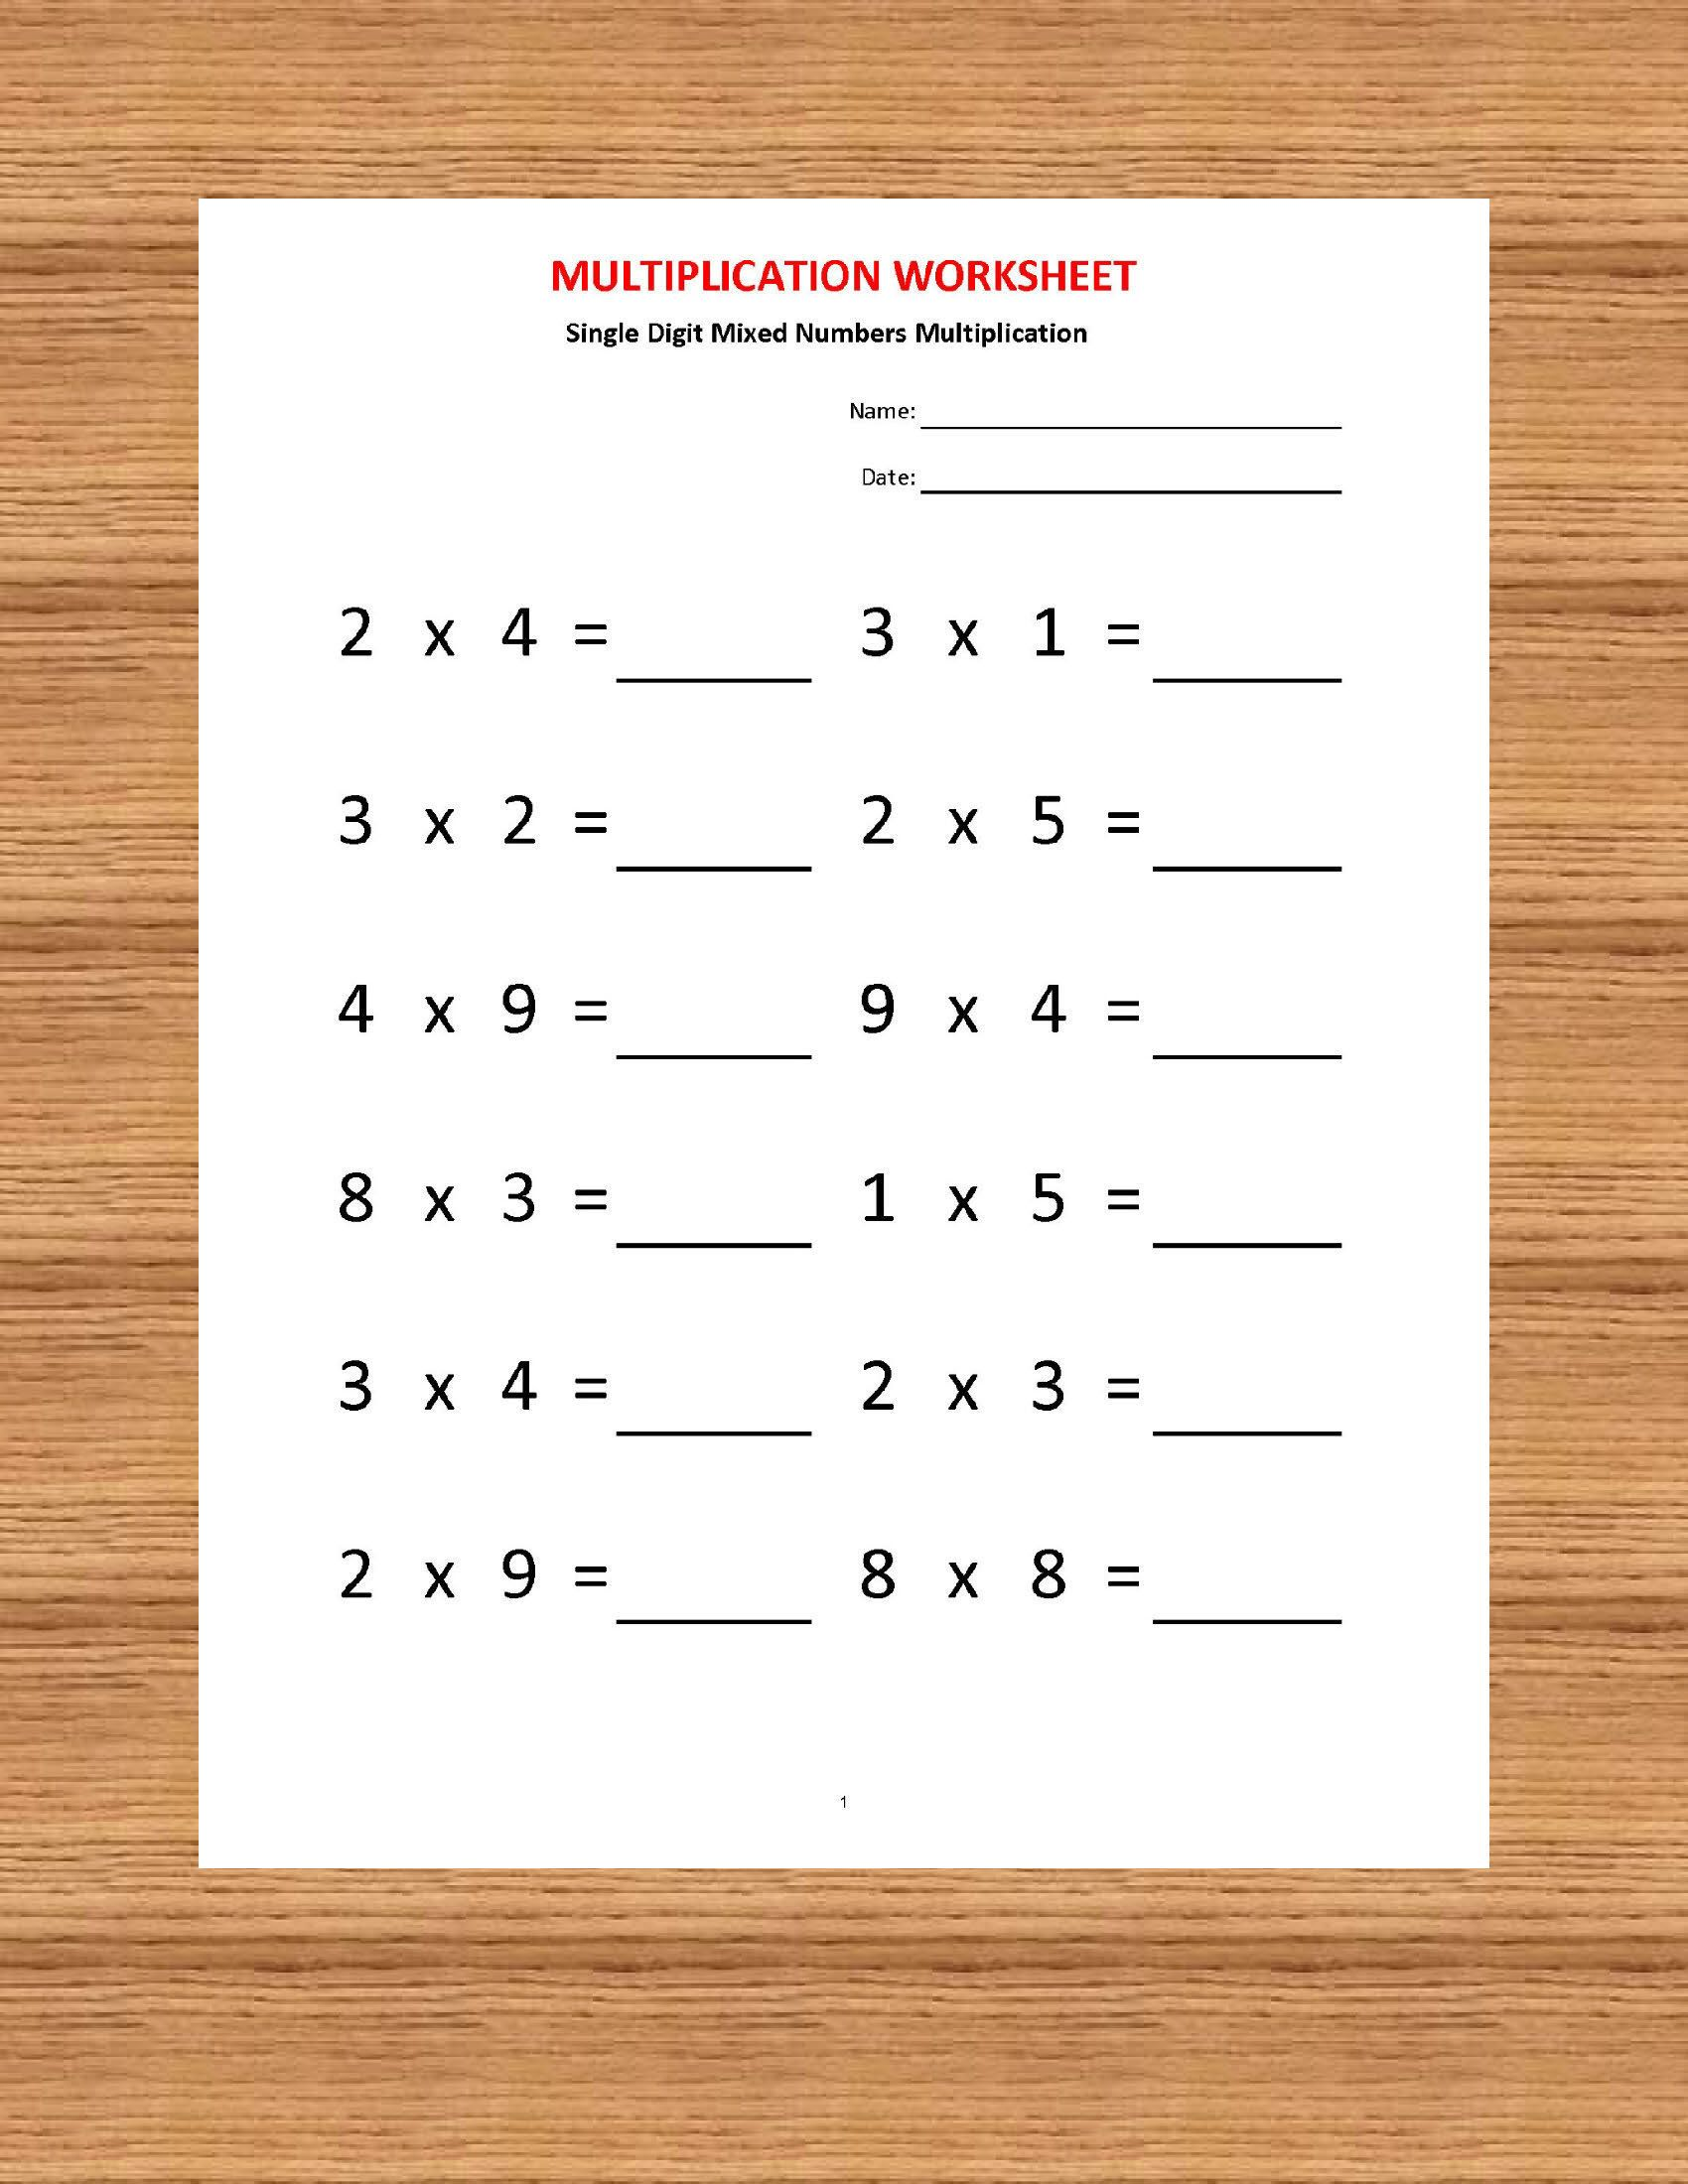 medium resolution of Multiplication Worksheets Printable worksheets   Etsy   2nd grade worksheets